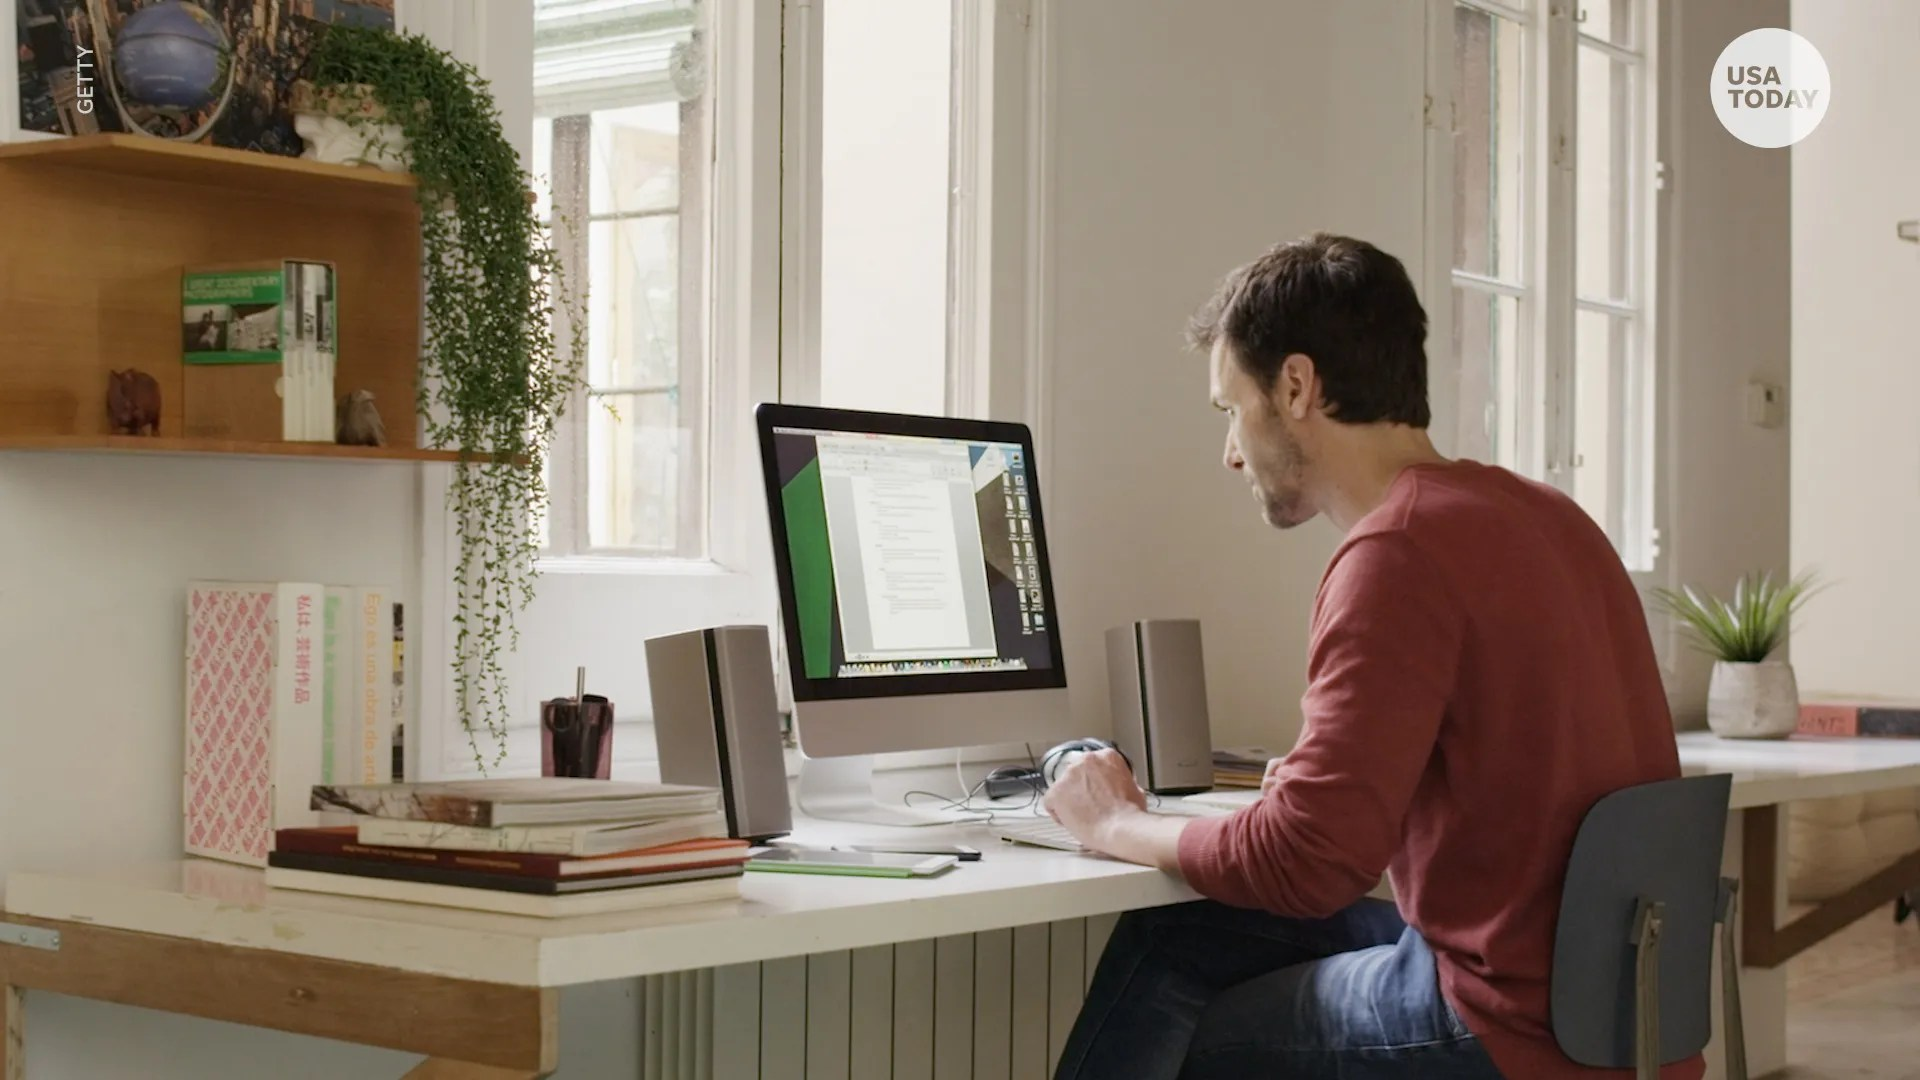 How to work from home amid coronavirus: Best telecommuting tech tools